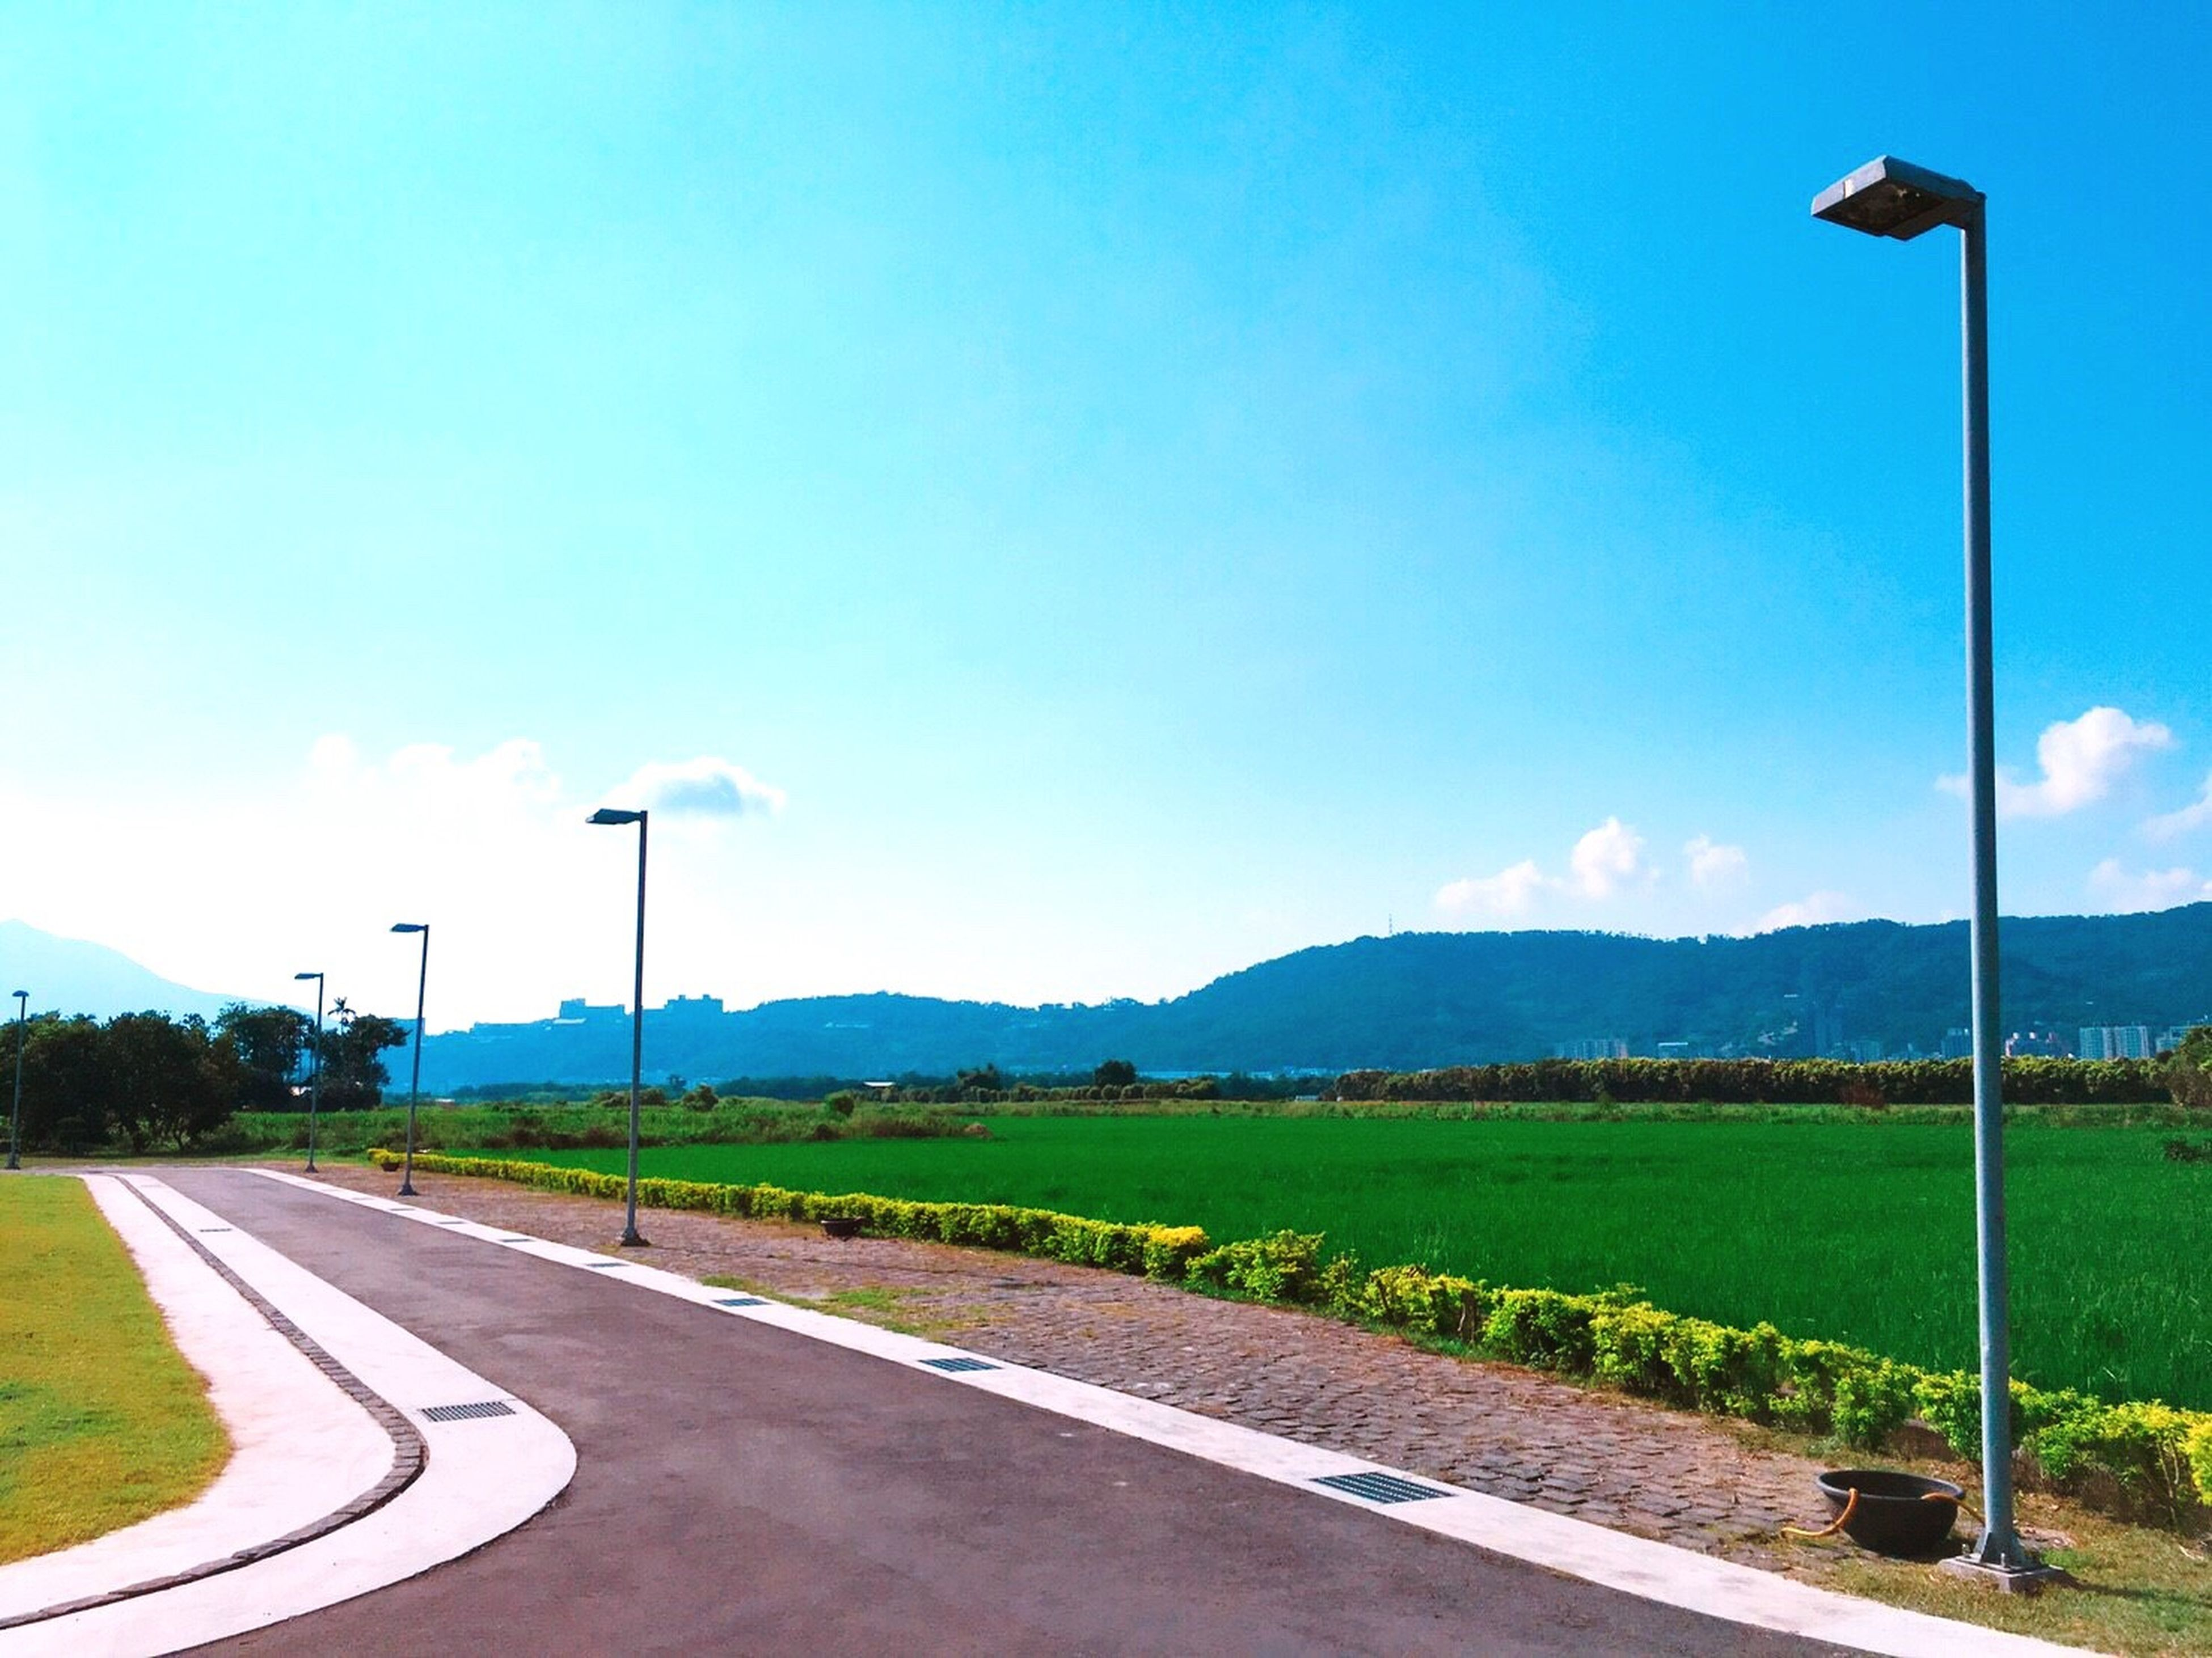 road, transportation, empty, the way forward, clear sky, landscape, street, road marking, tranquility, solitude, tranquil scene, pole, mountain, day, dividing line, long, country road, outdoors, blue, empty road, mountain range, curve, nature, countryside, scenics, vanishing point, surface level, diminishing perspective, beauty in nature, non-urban scene